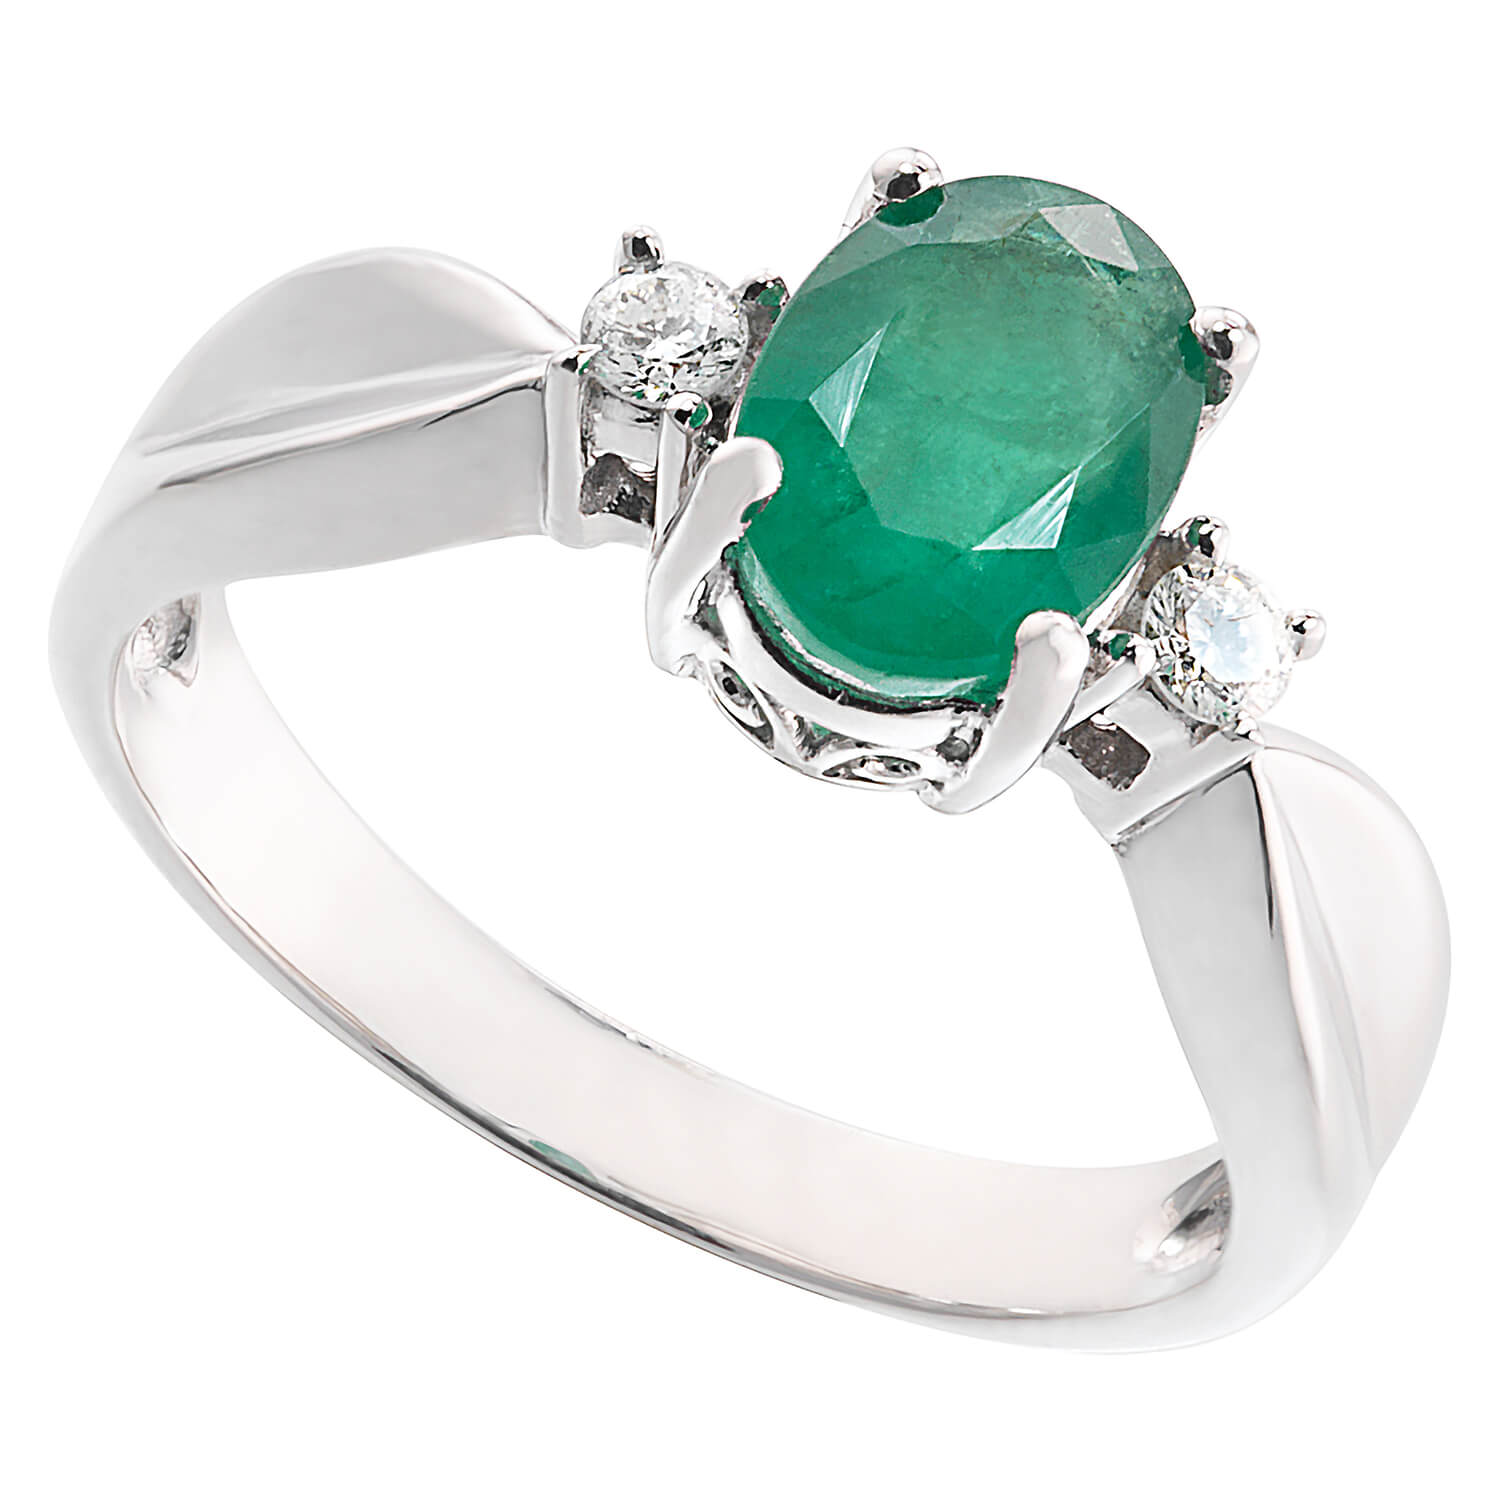 9ct white gold emerald and diamond three stone ring